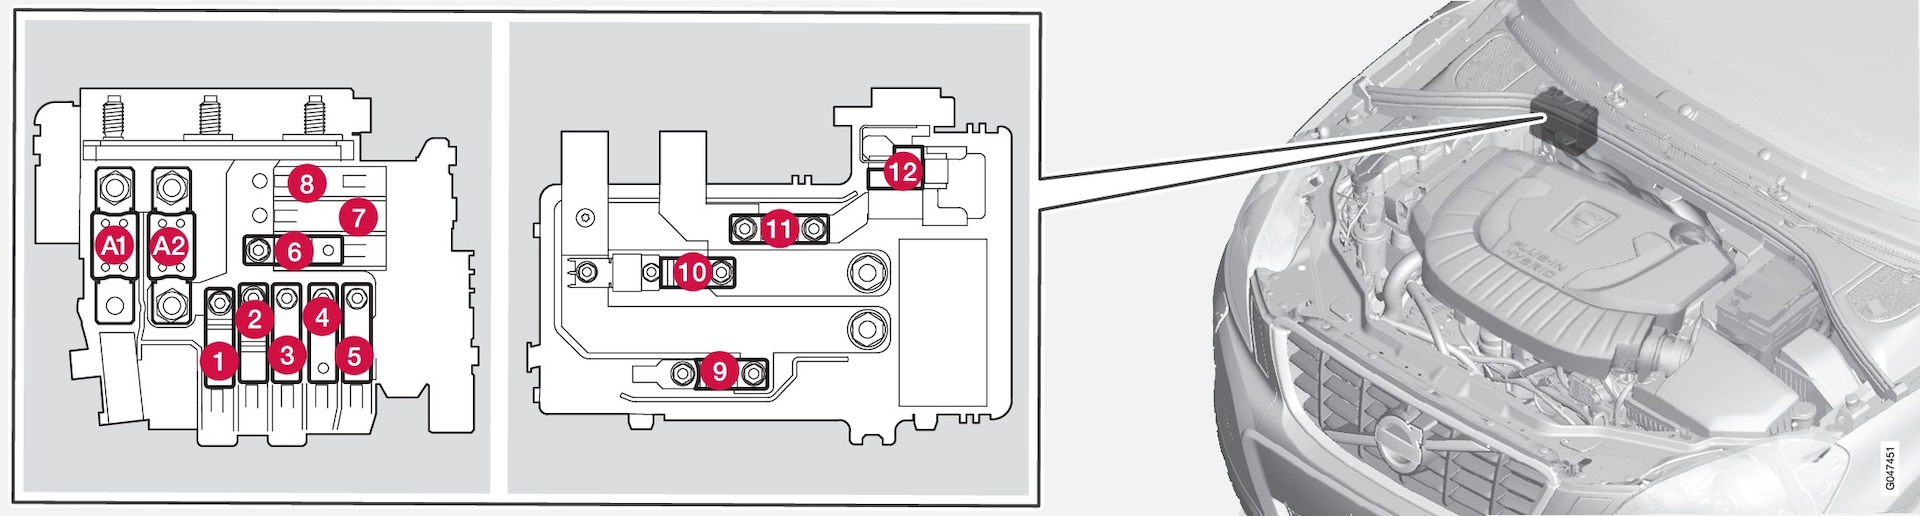 Location of fuses for the Start/Stop function.